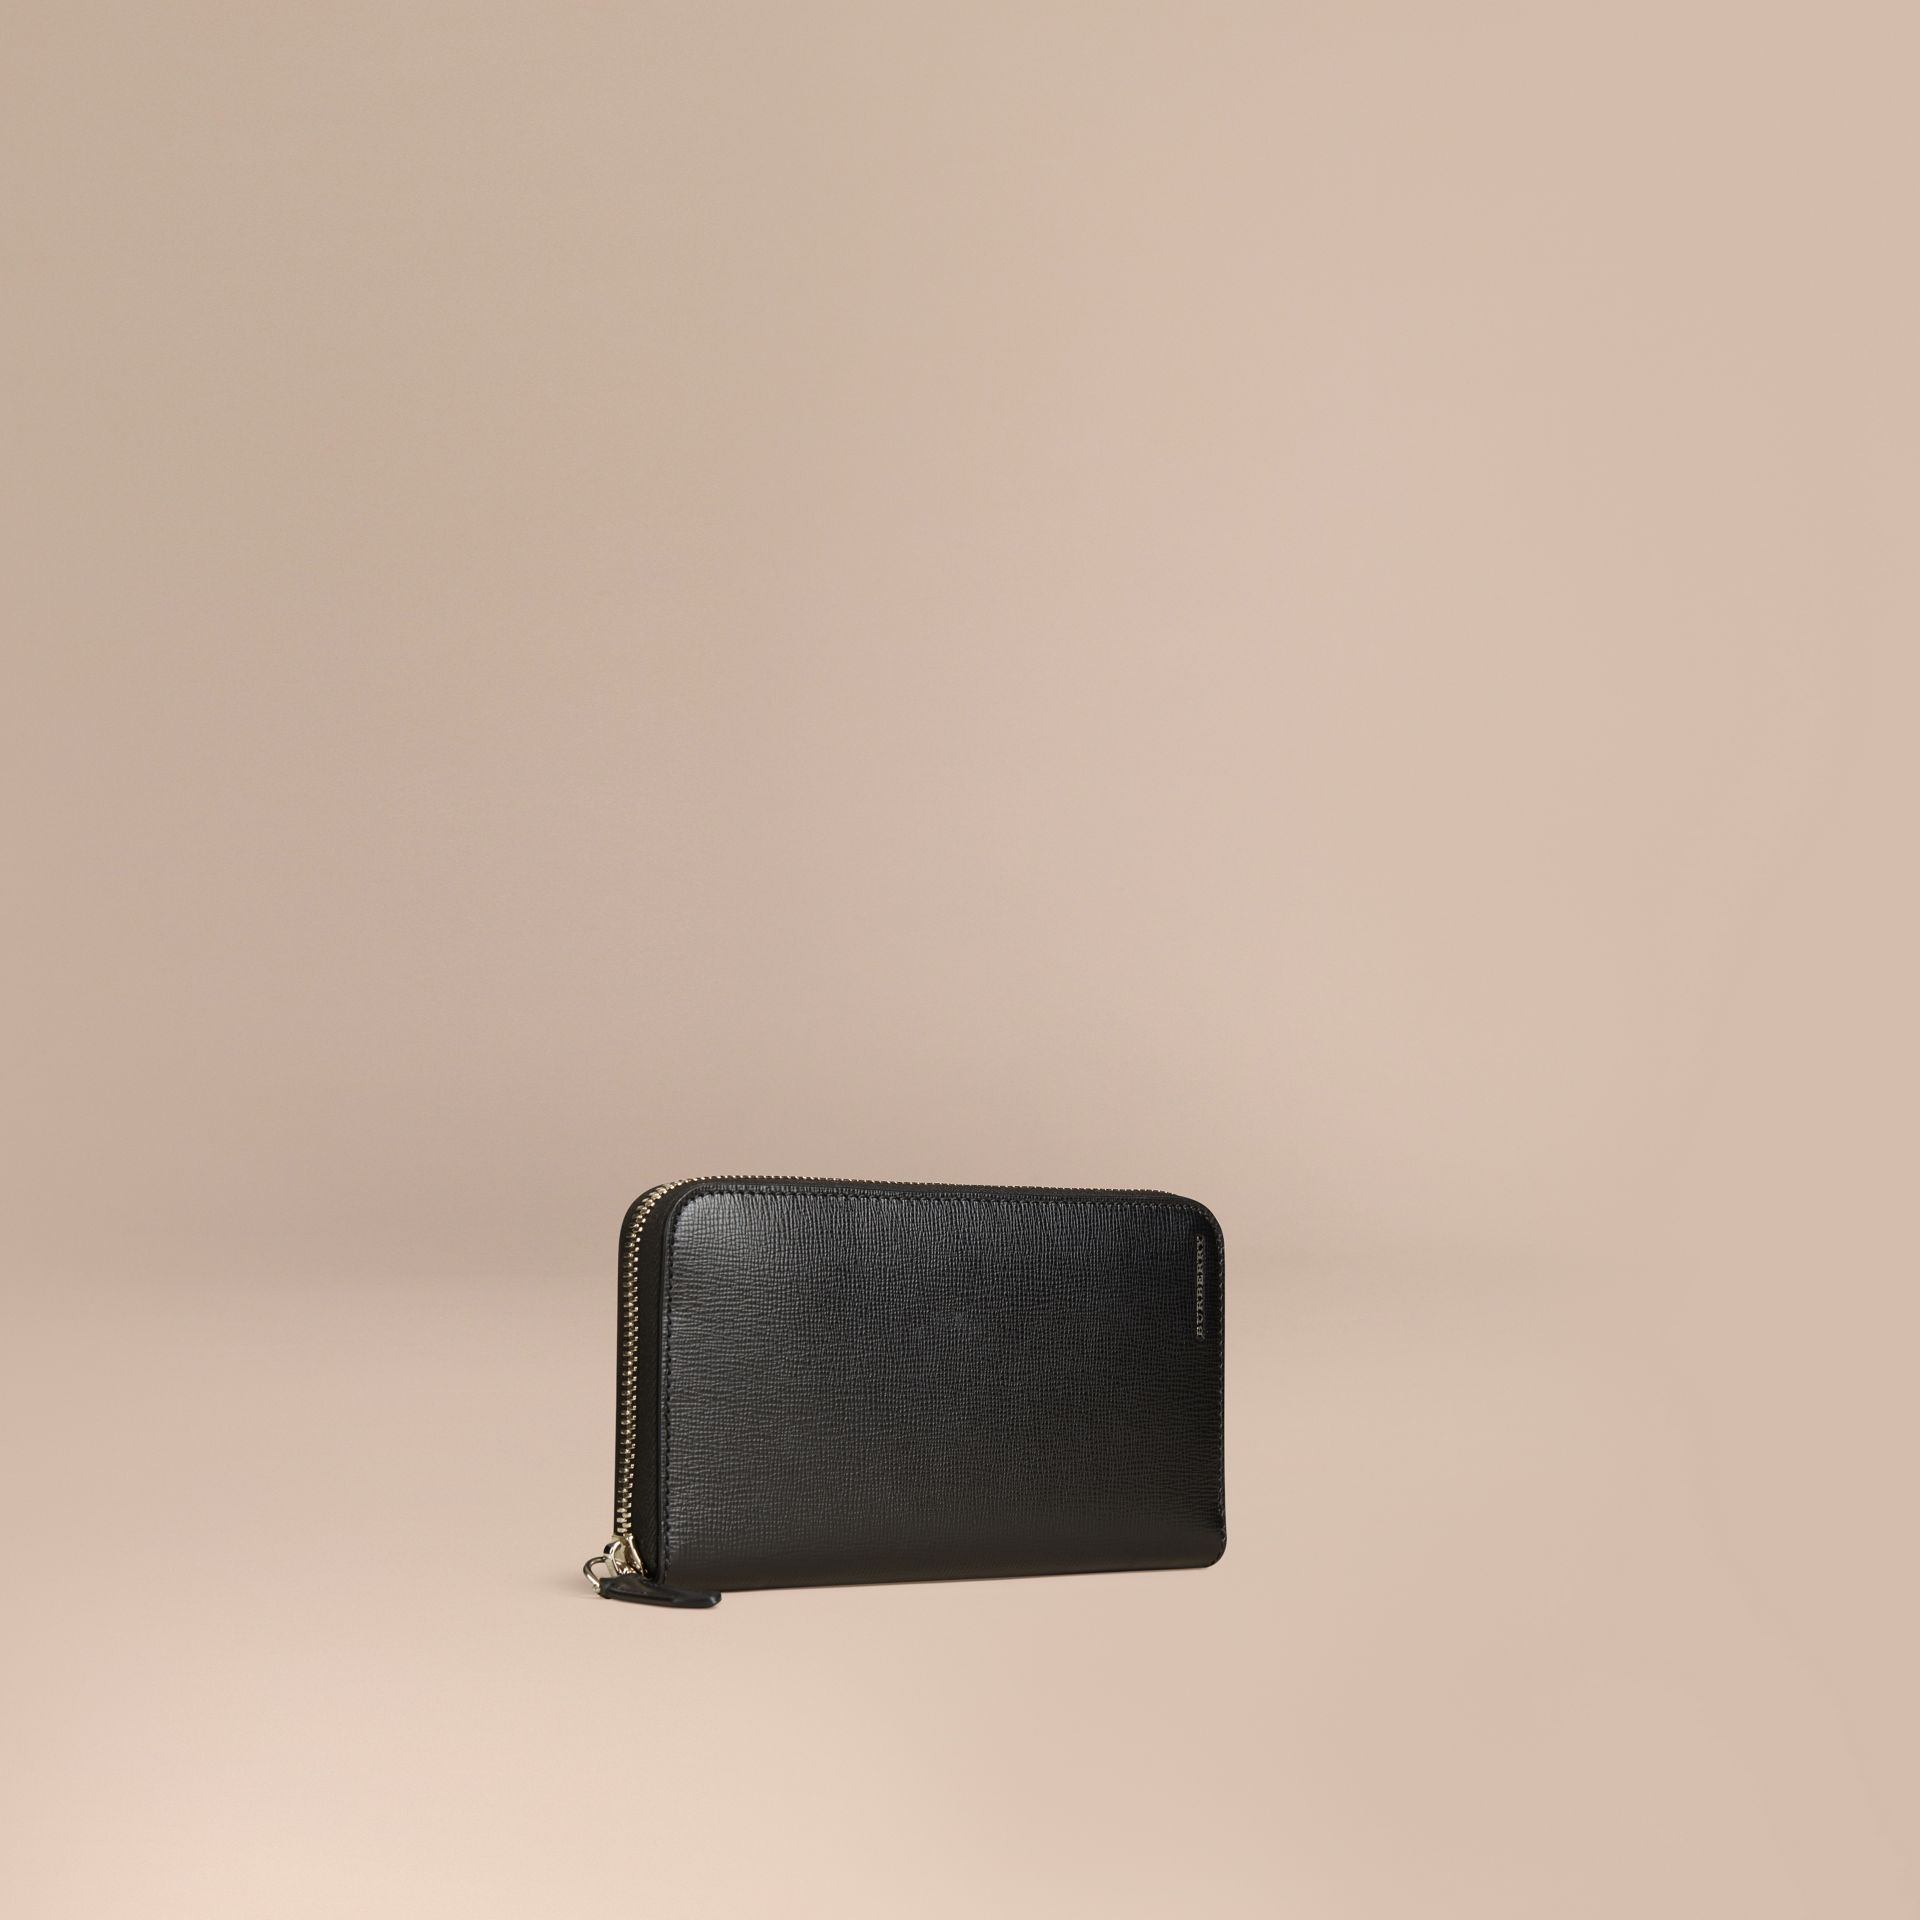 London Leather Ziparound Wallet Black - gallery image 1